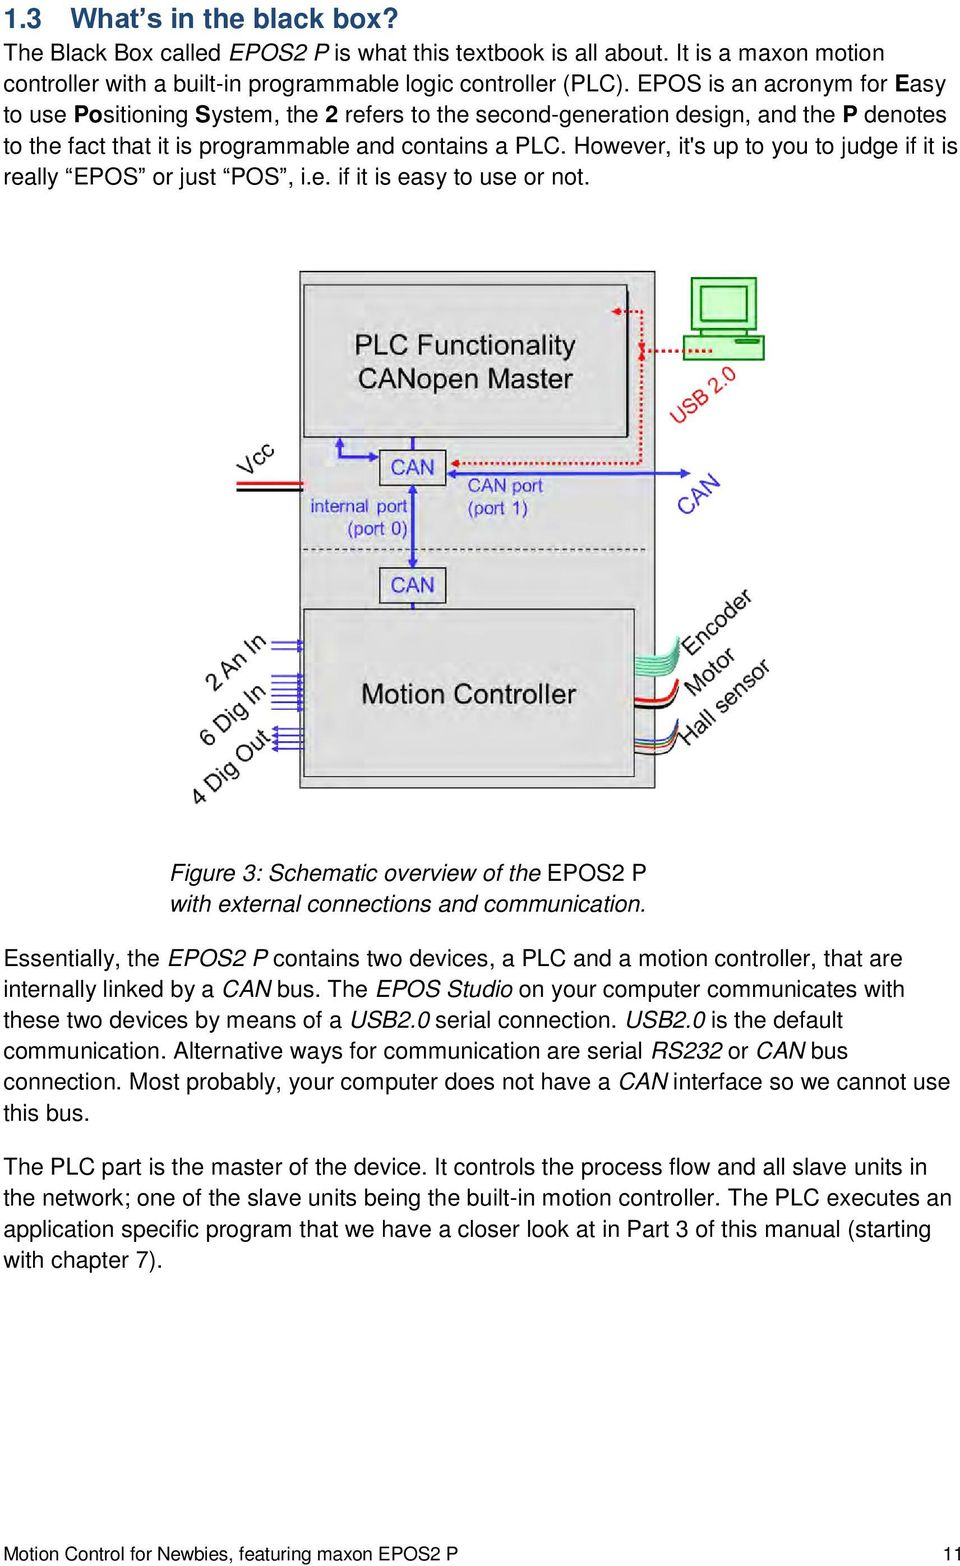 Motion Control For Newbies Featuring Maxon Epos2 P Pdf 3 Way Switch Wiring Diagram However Its Up To You Judge If It Is Really Epos Or Just Pos